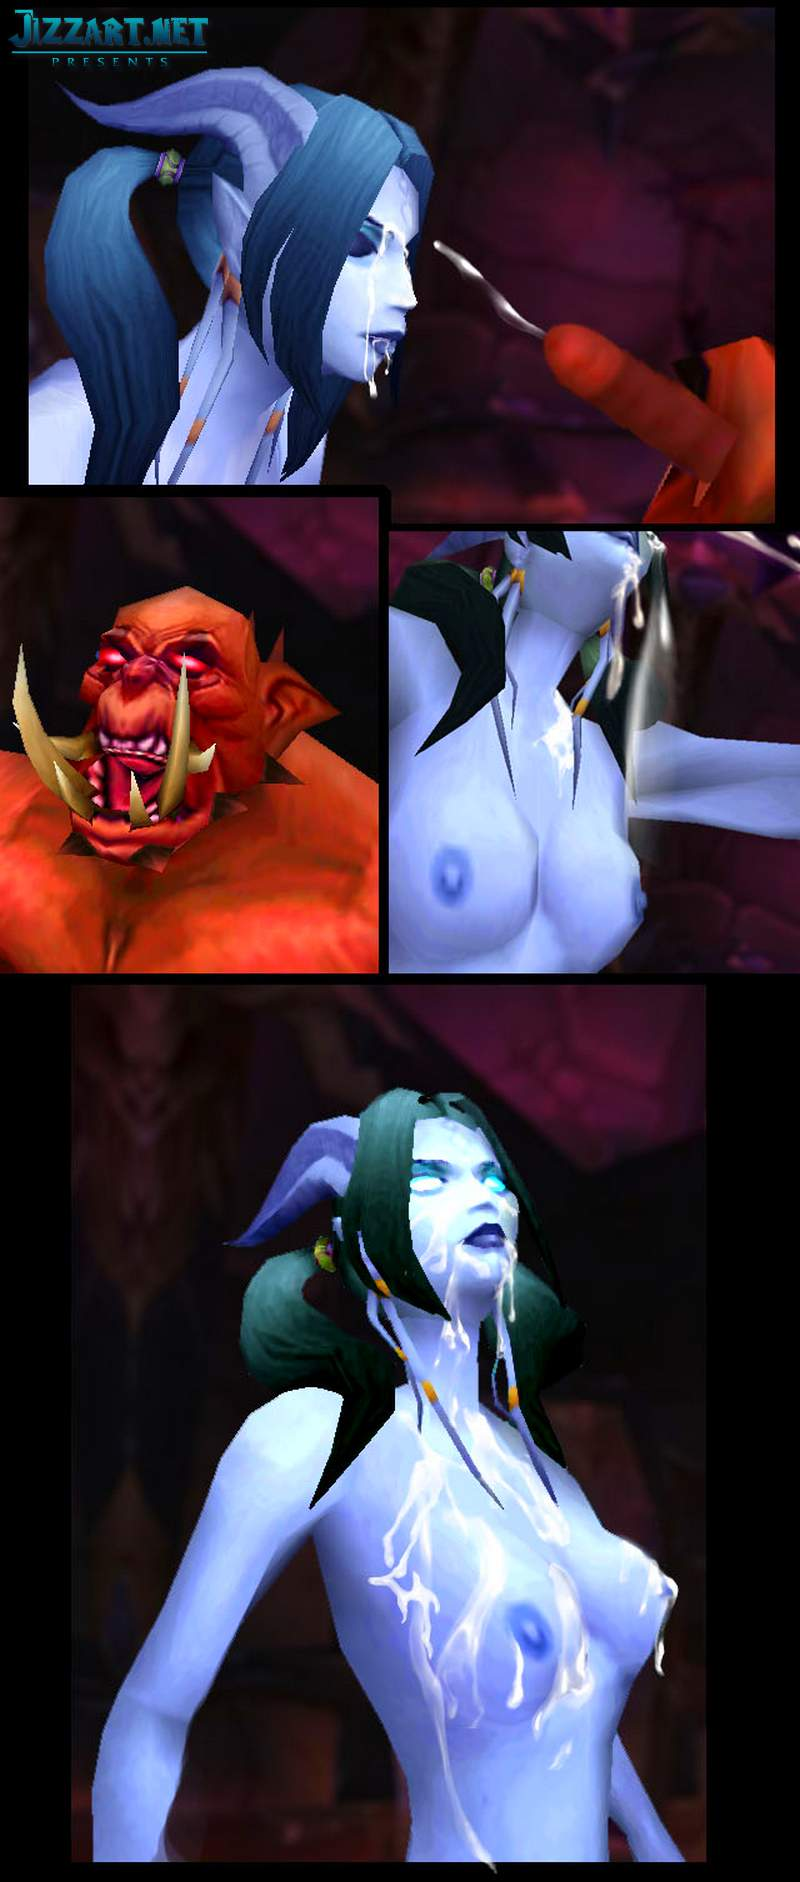 Nude nightelf strip sex image